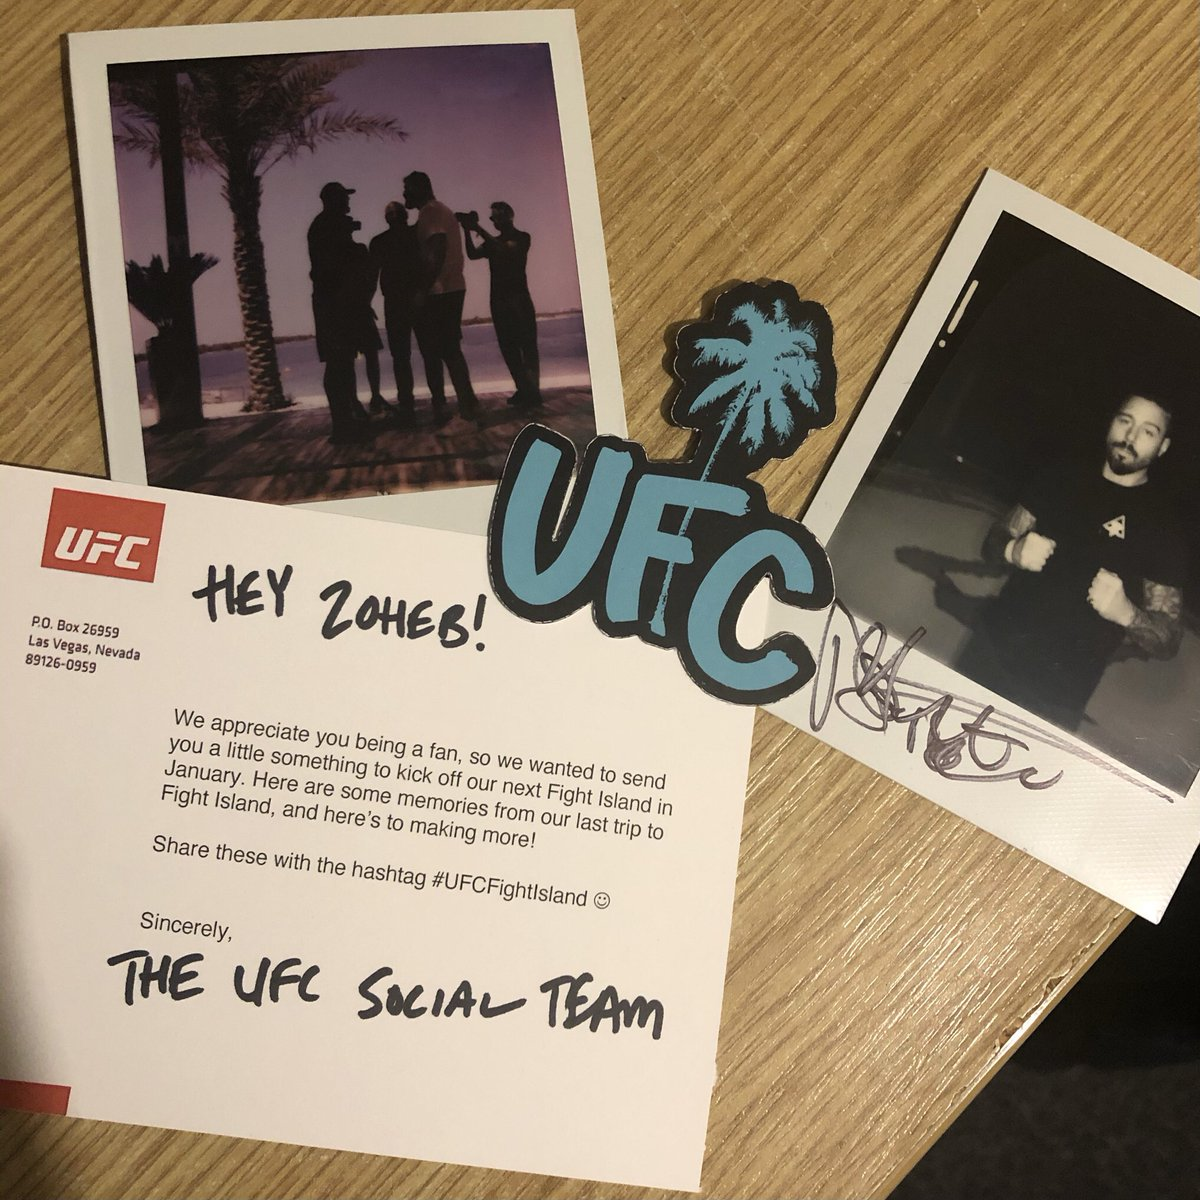 After a long time, I finally received the gifts that the @UFC had sent me!   Two Polaroids; one of @DomReyes & @JanBlachowicz facing off and one signed by @DanHardyMMA. They also included a small #UFCFightIsland logo and a postcard from the social team! https://t.co/nNfH8KEJfs